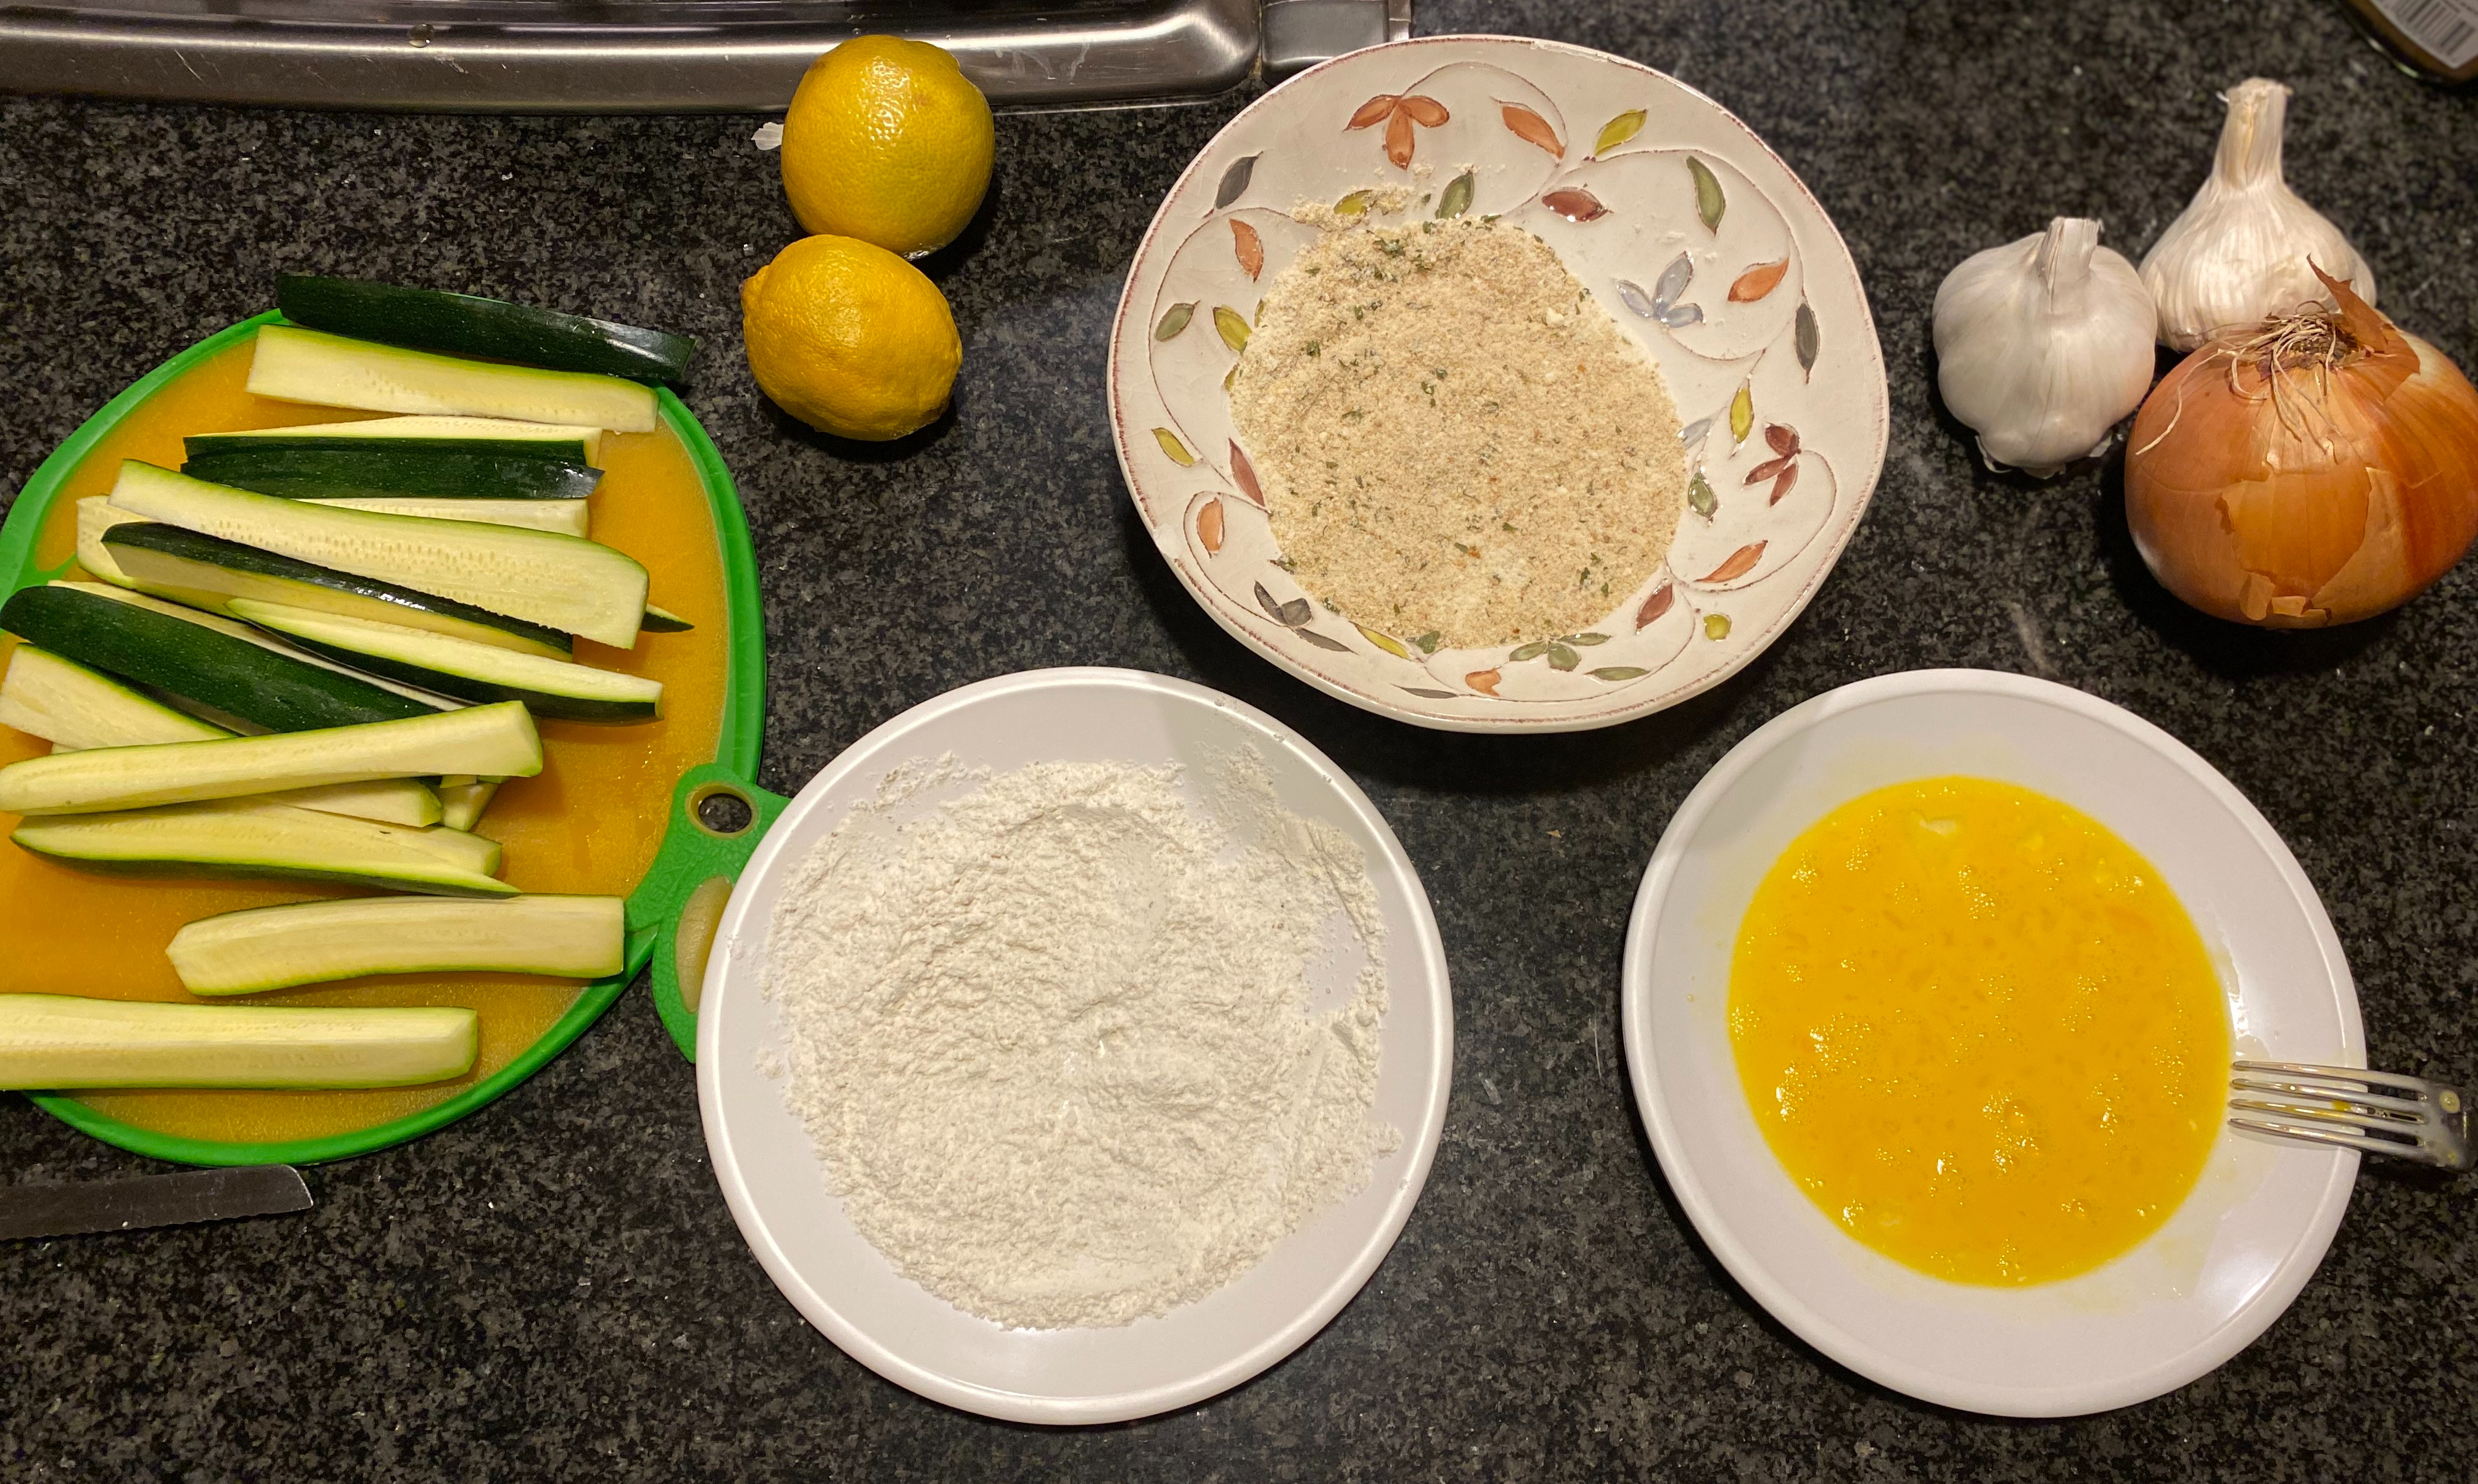 Make sure you have stations ready for your fries: a plate for flour, a plate for eggs, and one for breadcrumbs.